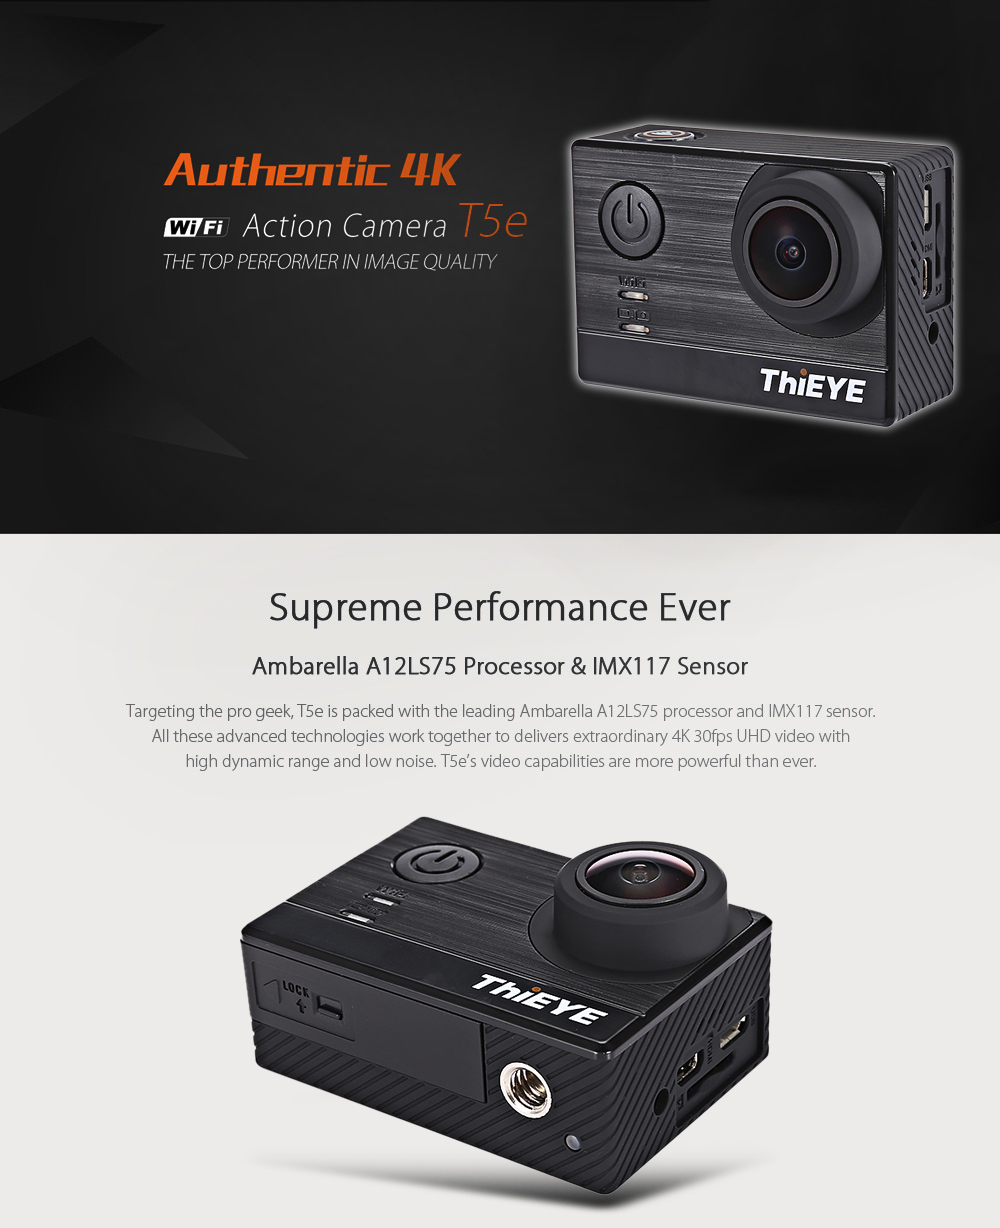 Thieye T5e Wifi 4k 30fps Sport Camera 16mp 14419 Free Shipping X Pro 6s Action 12 Mp Package Contents 1 Multi Language User Manual Wiper Usb Cable Pack Of Accessories Waterproof Case1